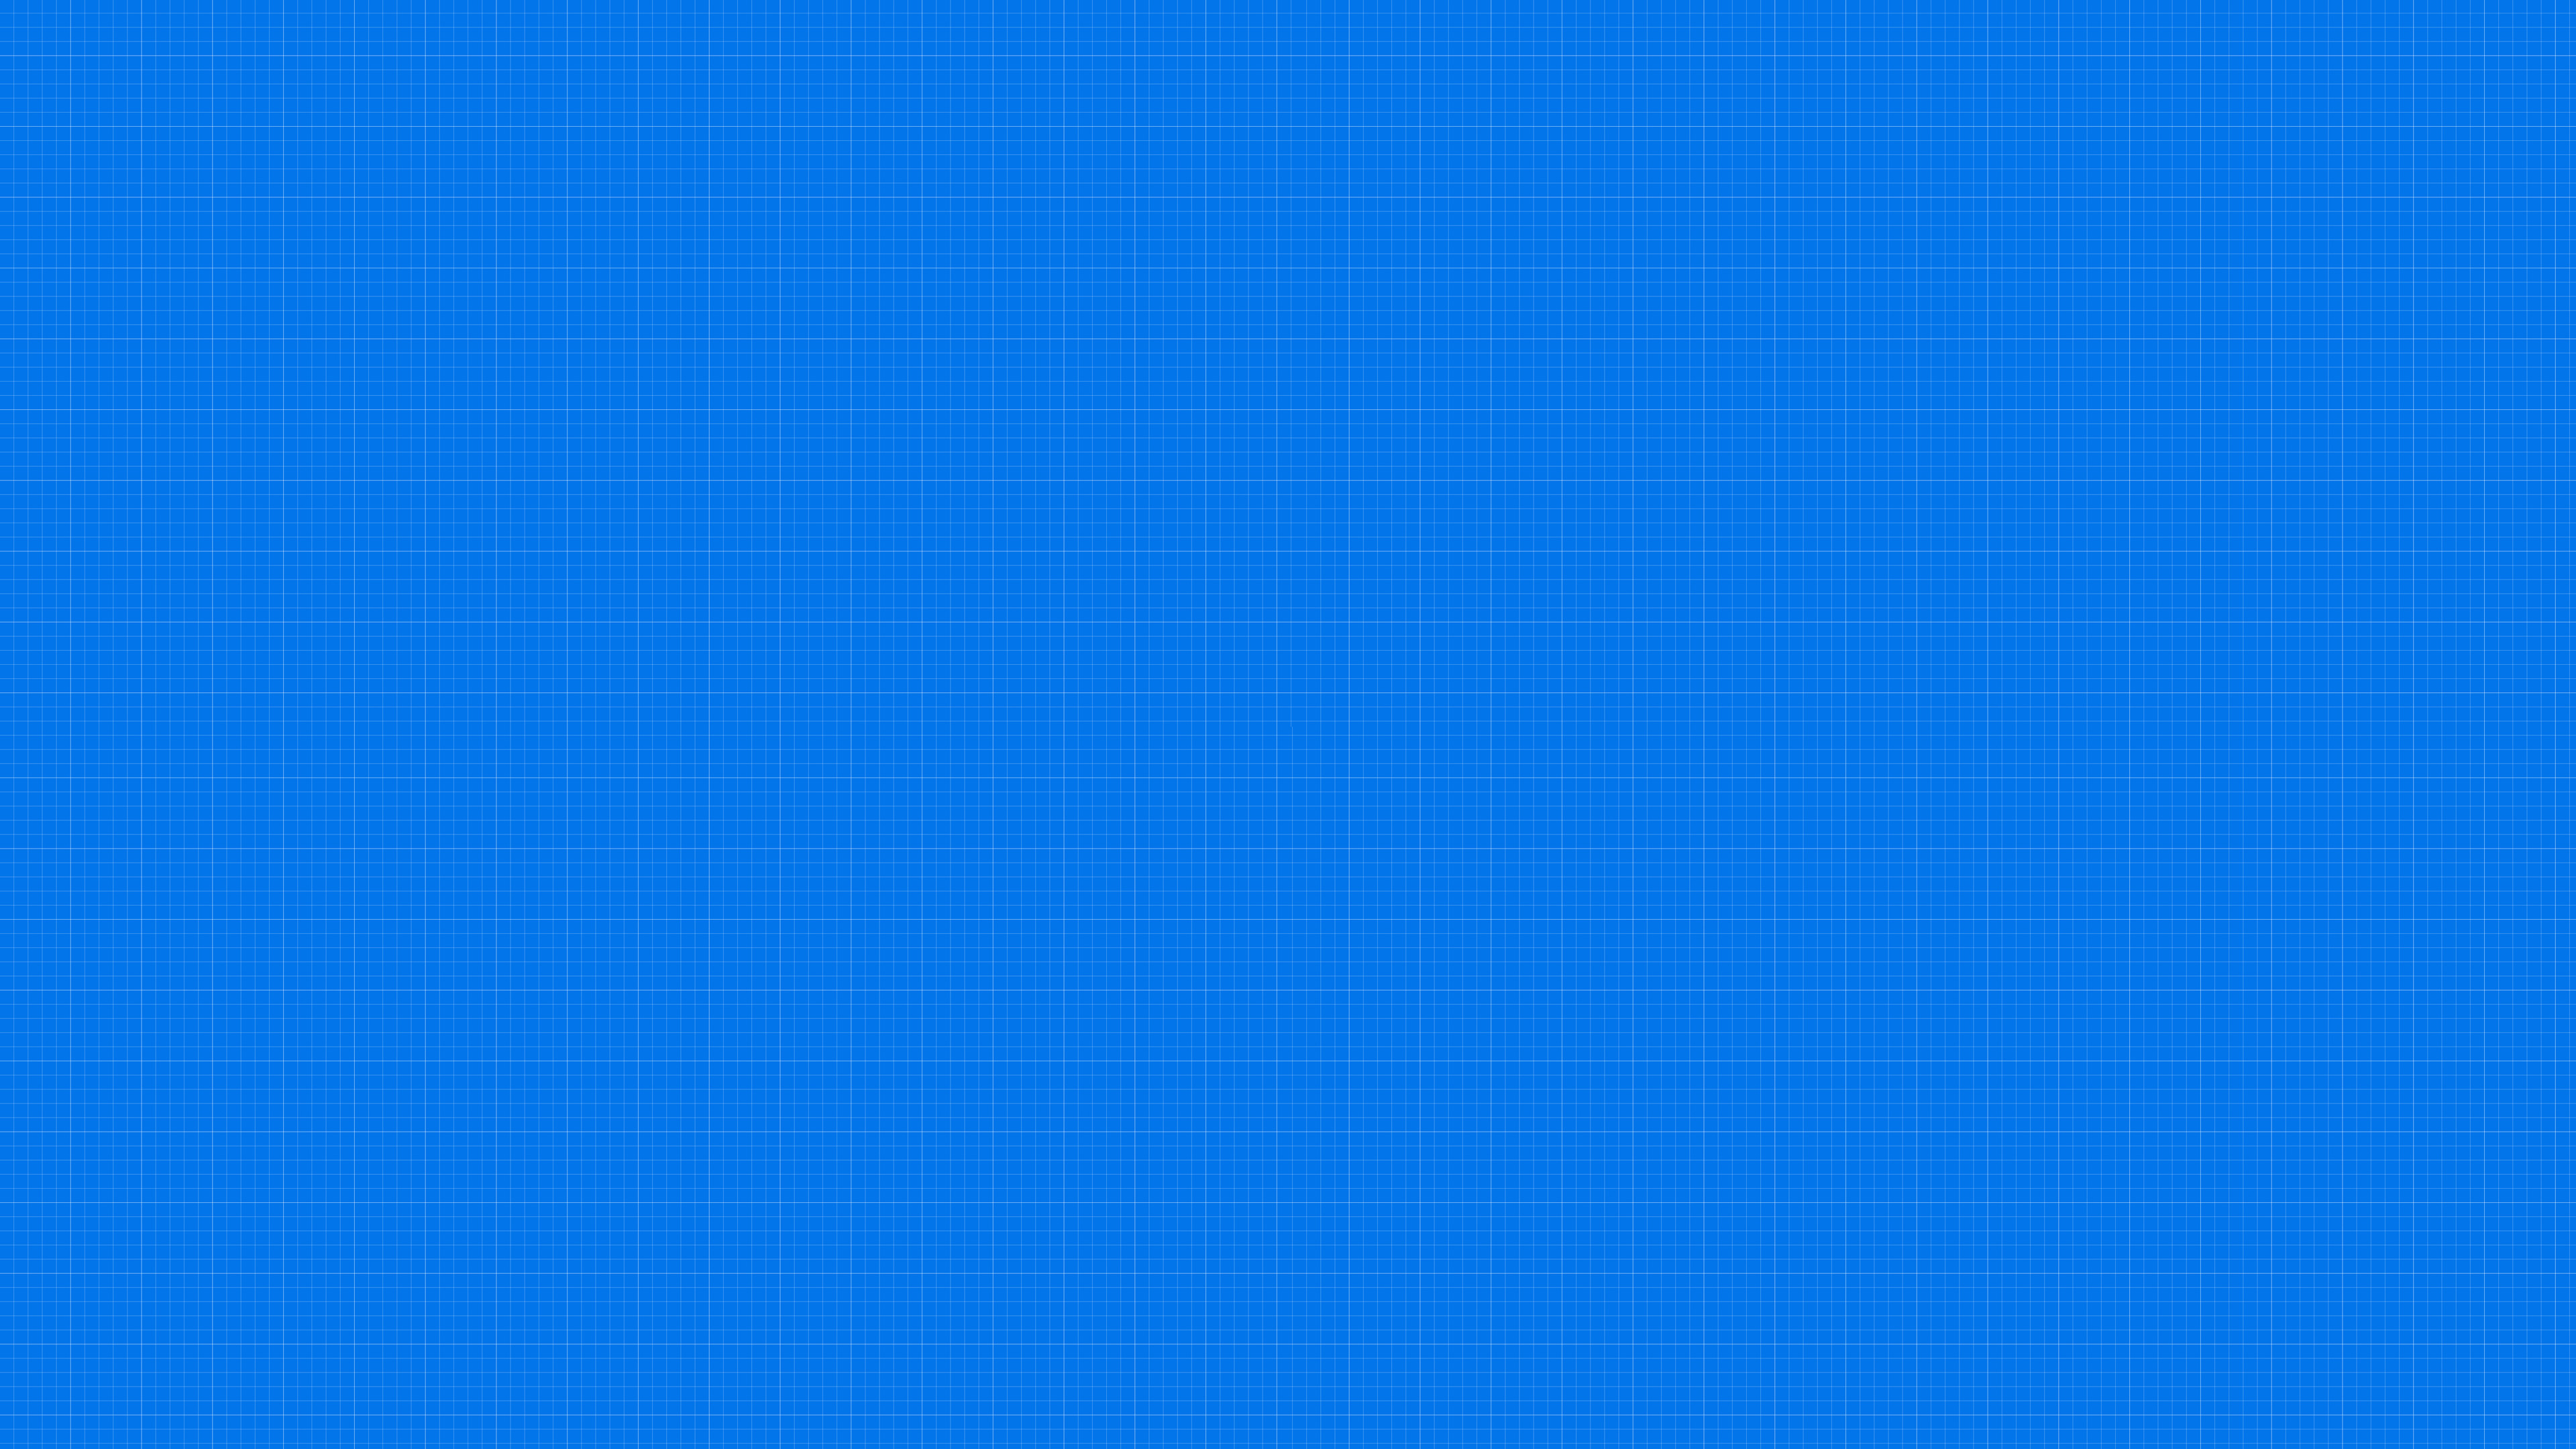 Blank blueprint background 46 pictures download b3f65d061c6a532851ac4aba84e7975bg malvernweather Gallery